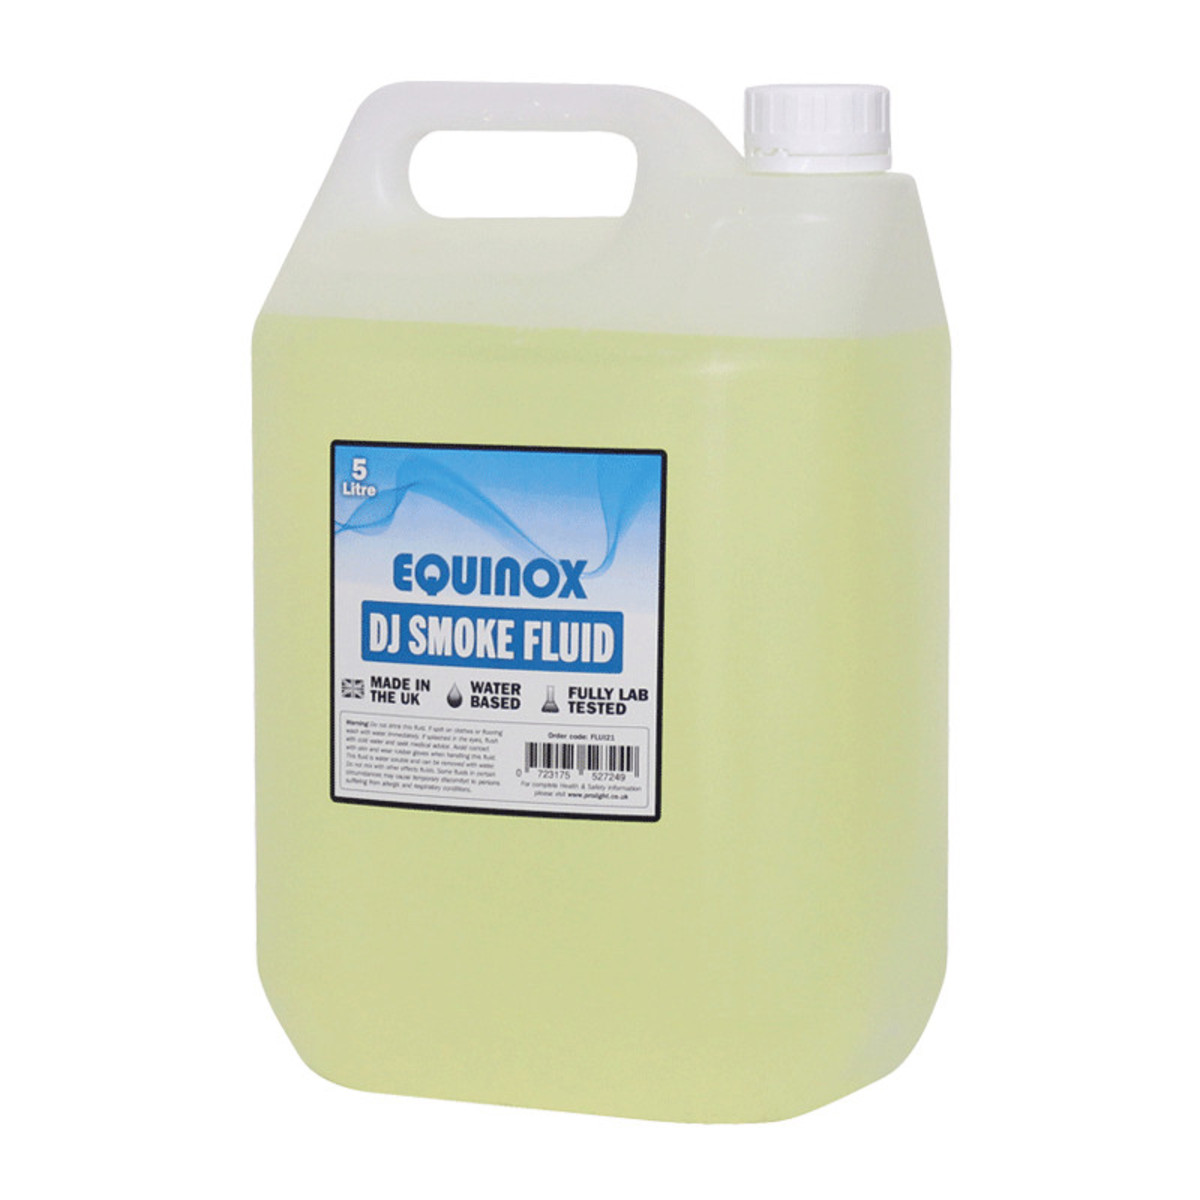 Image of Equinox DJ Smoke Fluid 5 Litres